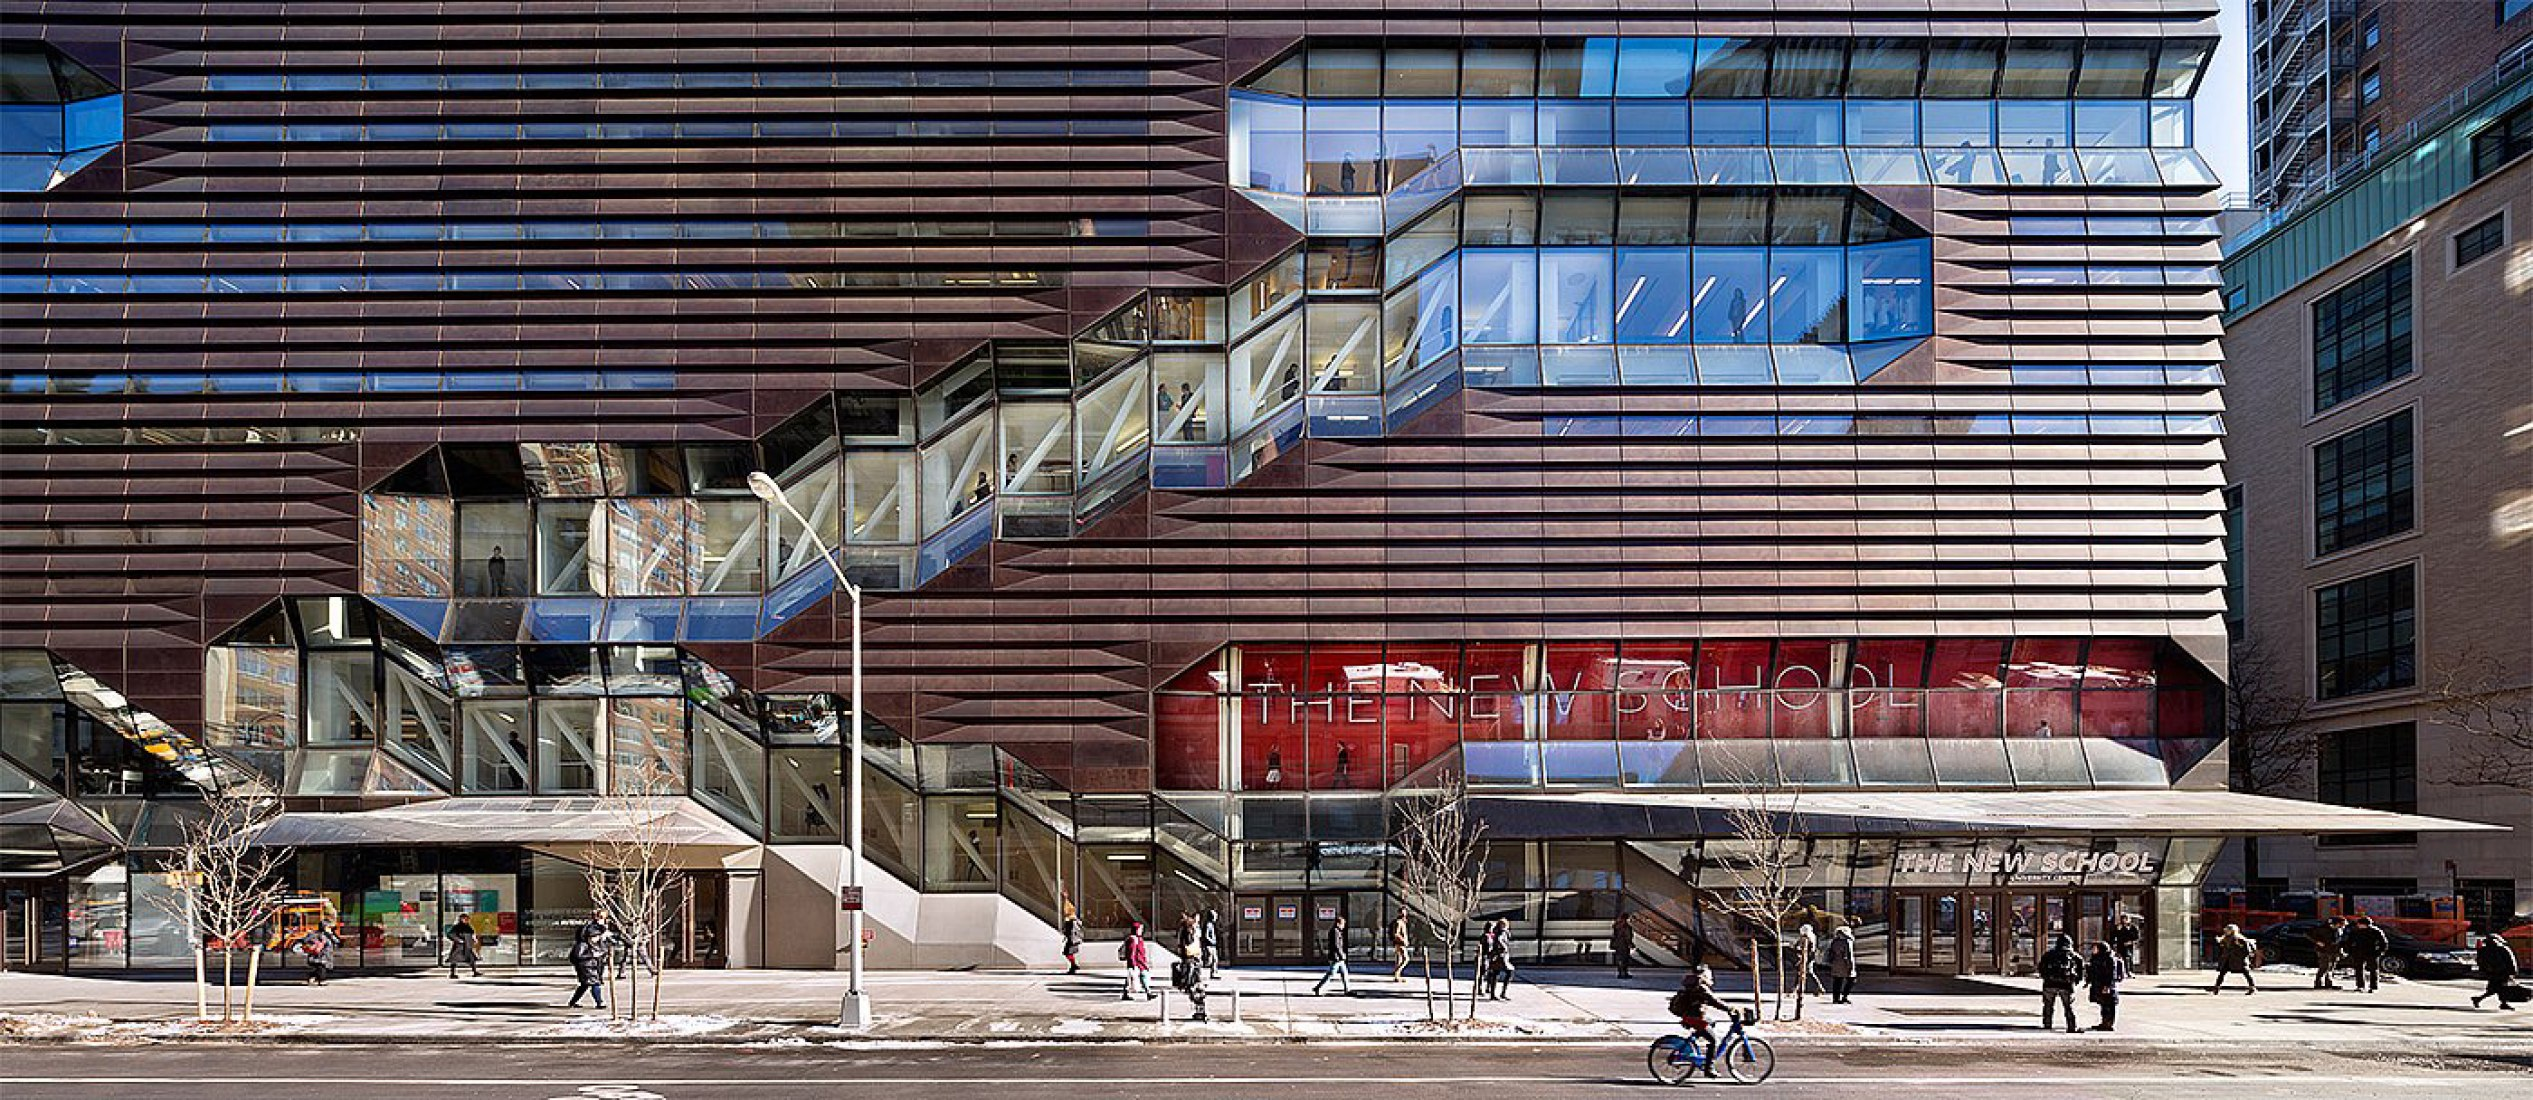 University Center. The New School. By SOM Architects. Photography © James Ewing